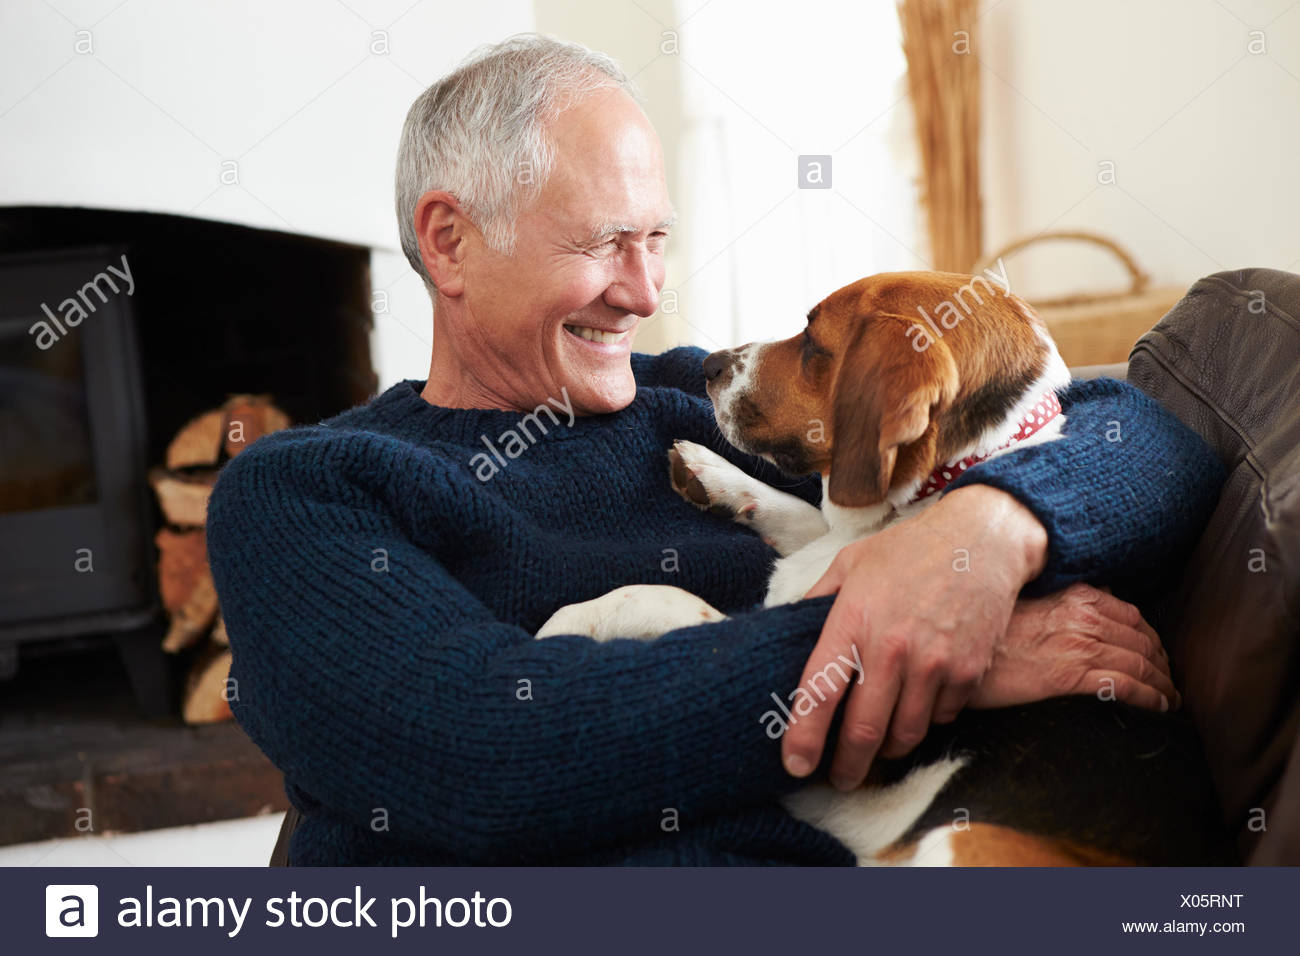 Senior Man Relaxing At Home With Pet Dog - Stock Image